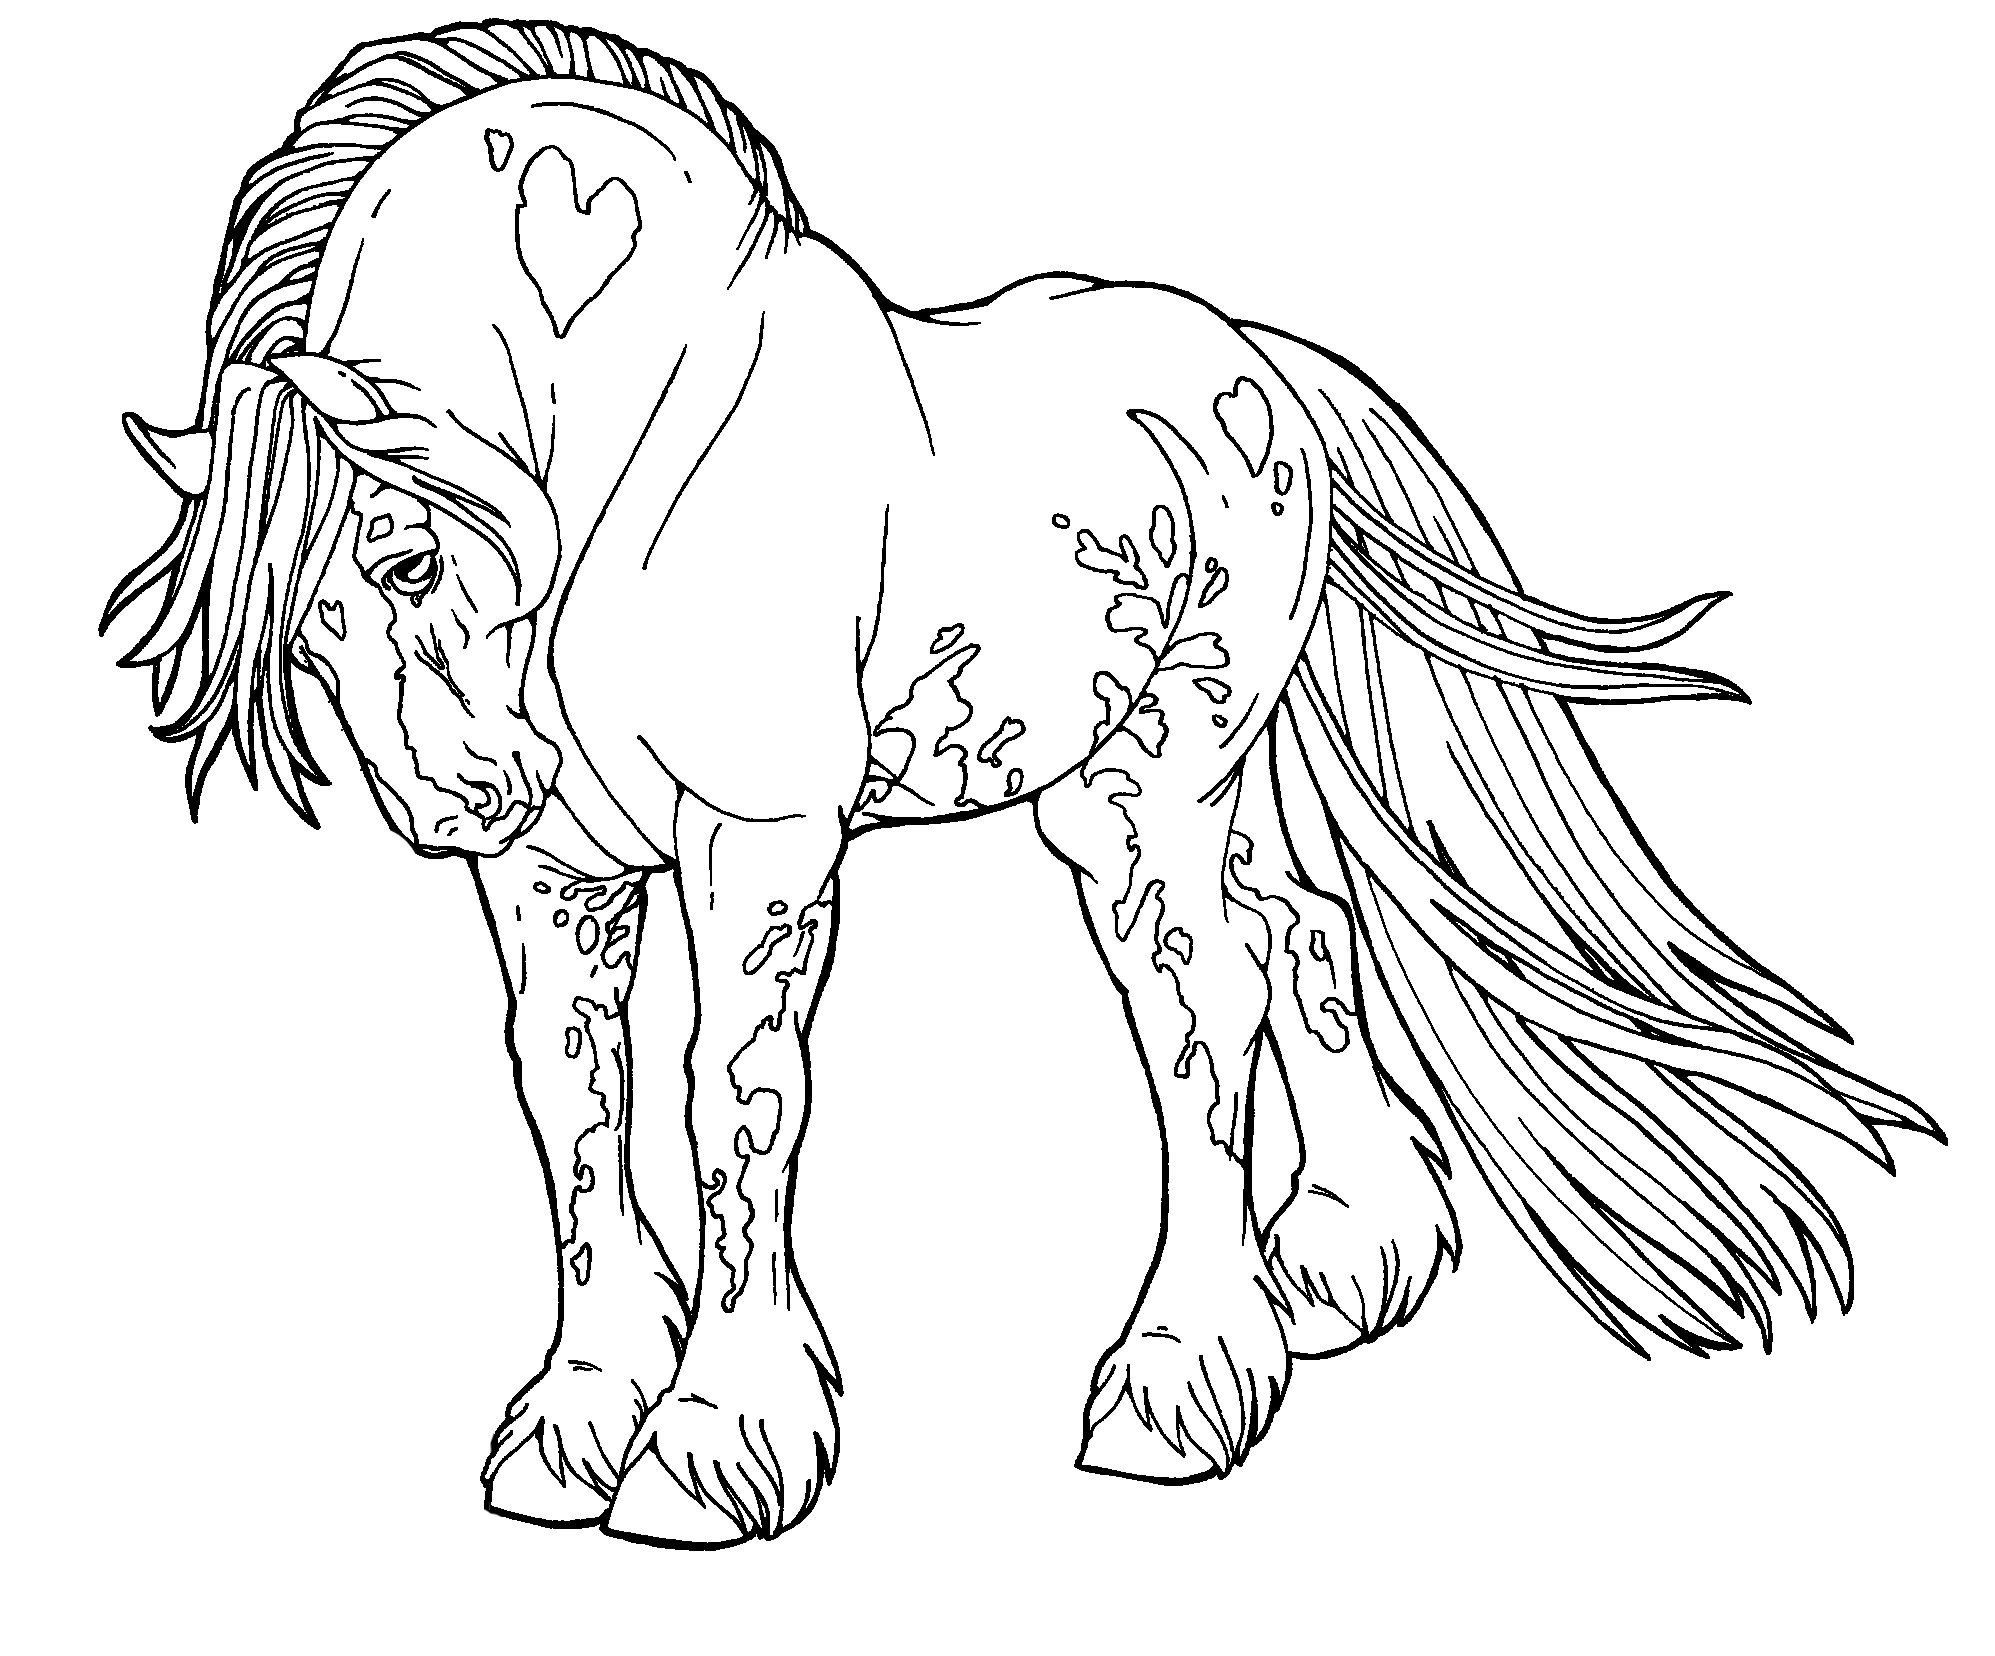 detailed horse coloring pages pin by akii gaikwad on 101ink horse coloring pages detailed pages coloring horse